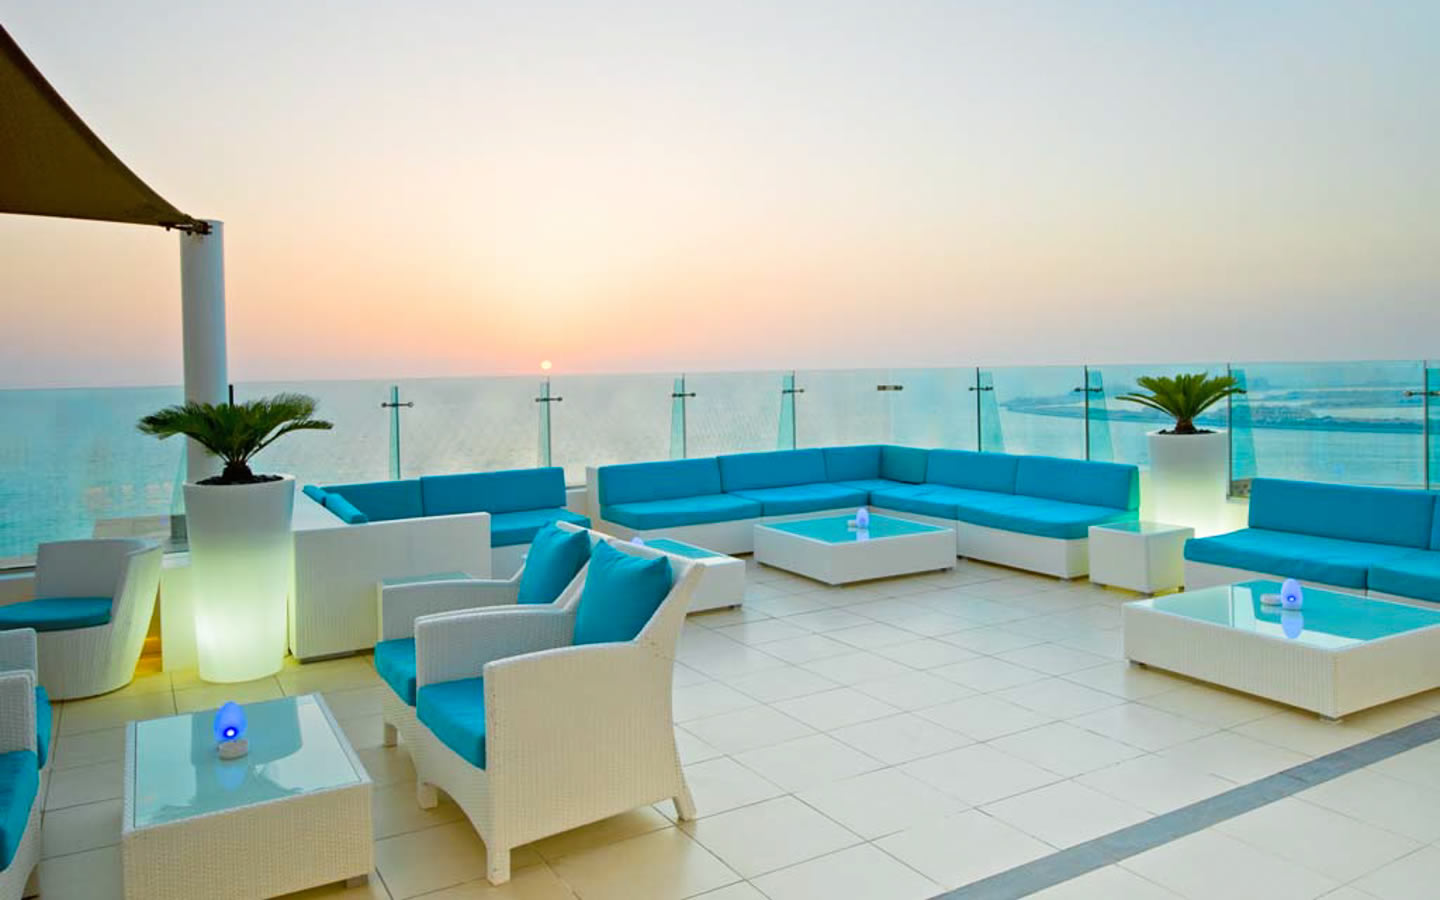 15 Best Outdoor Terraces in Dubai - PURESky - Hilton Dubai The Walk